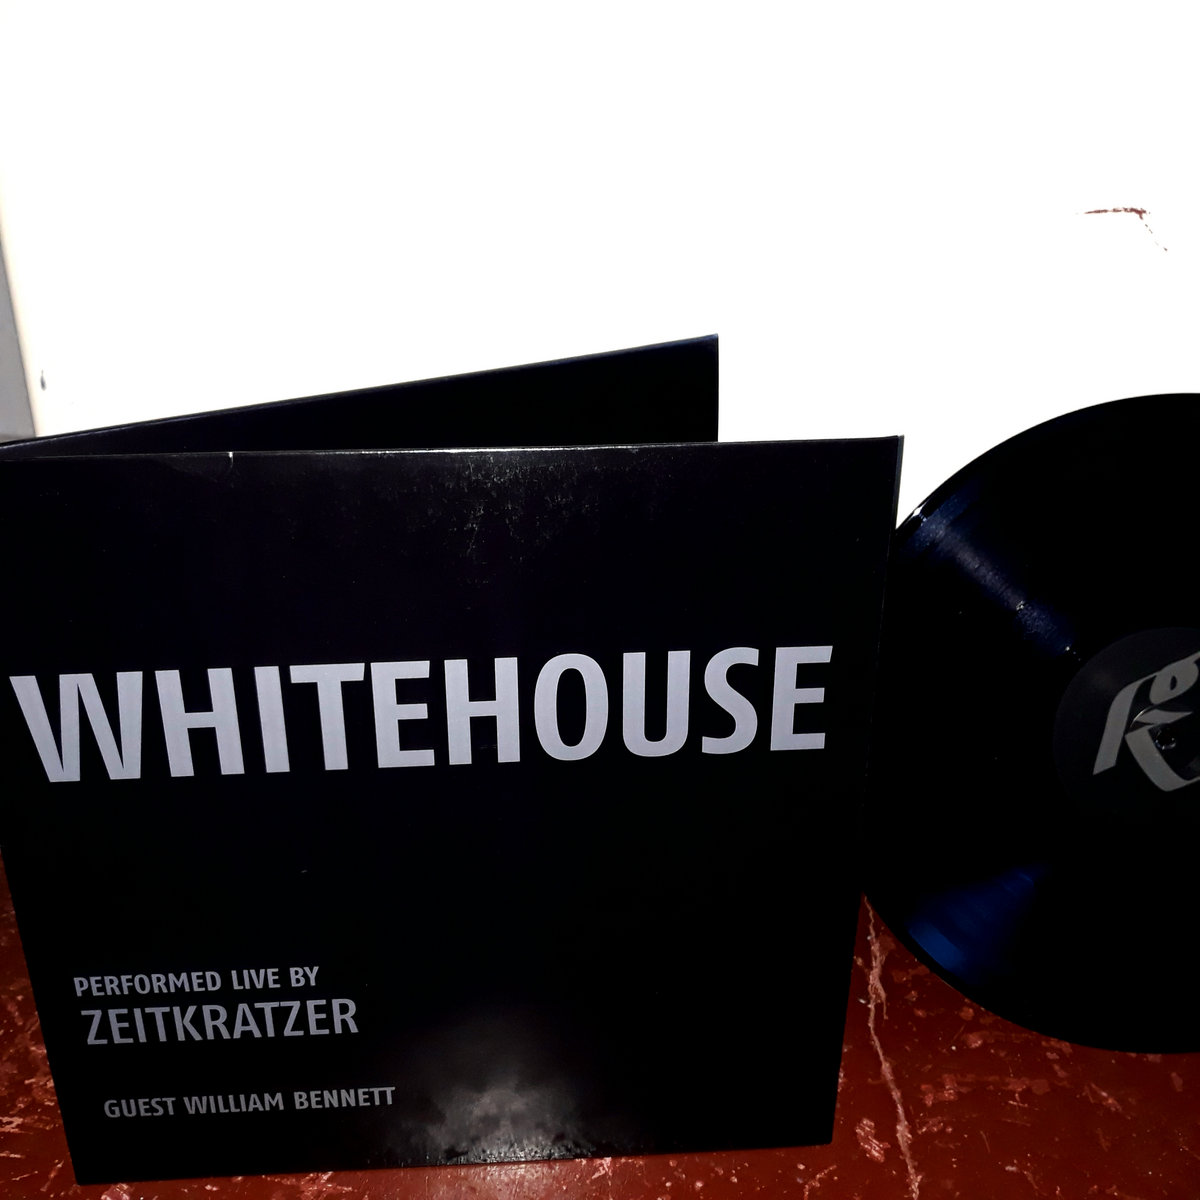 Whitehouse | Karlrecords